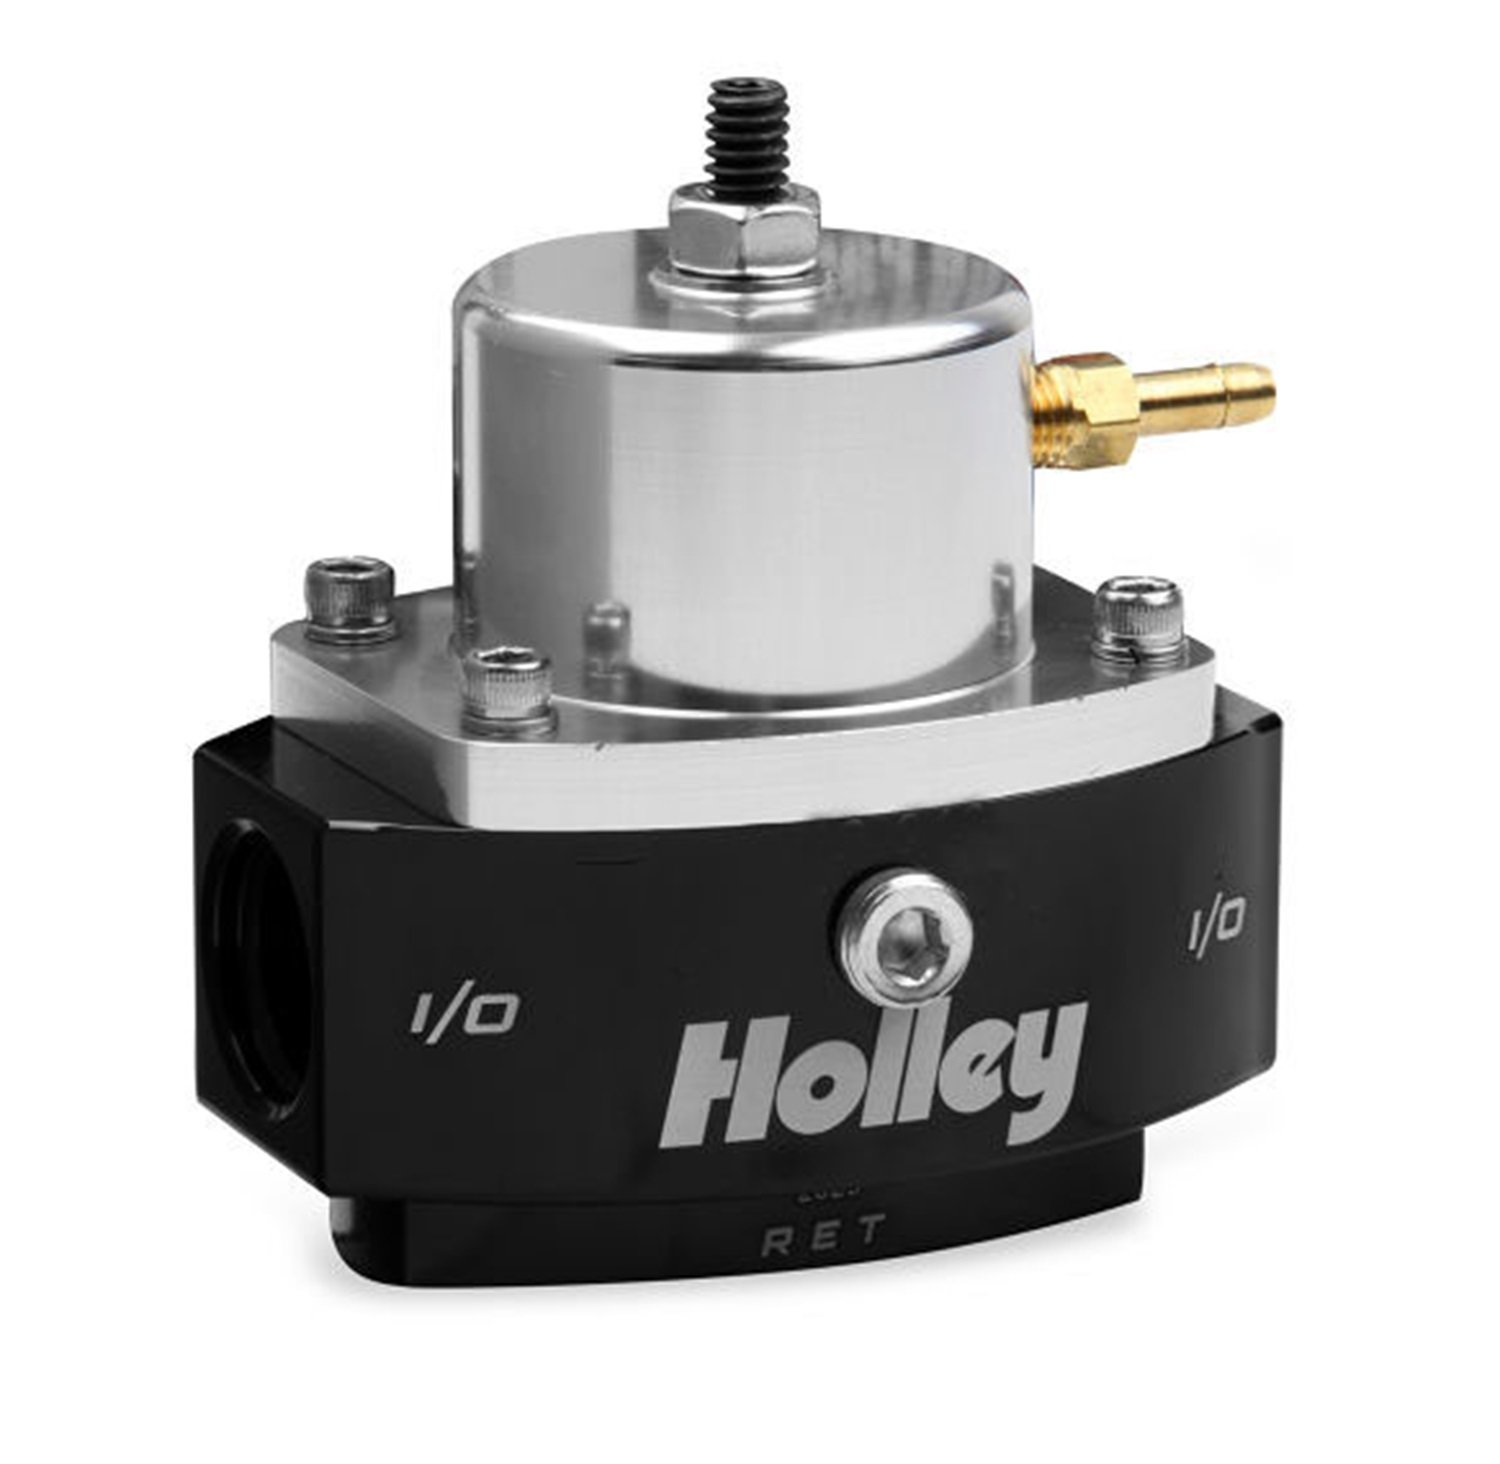 Holley 12-846 8AN Inlet / Outlet 6AN Return 40-70 PSI Billet Fuel Pressure Regulator by Holley (Image #1)